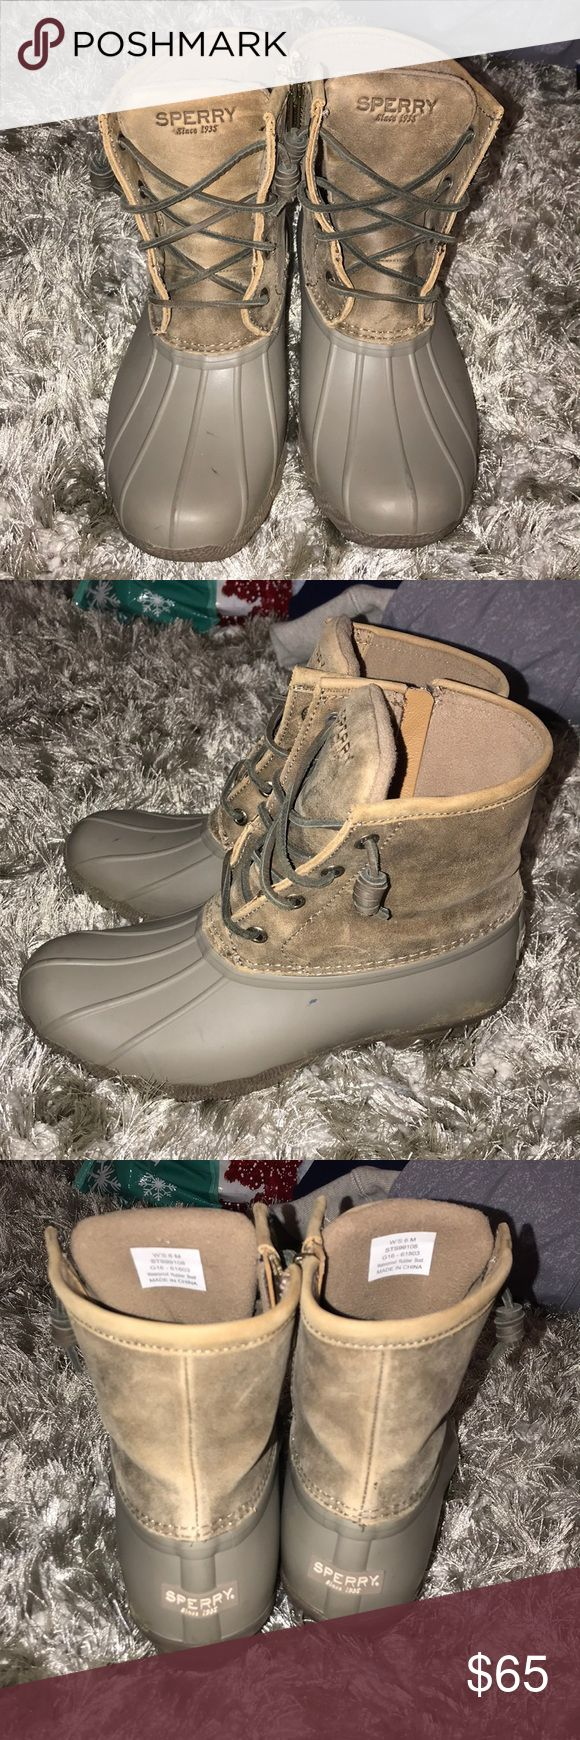 Sperry bean boots Worn a few times. Still in good condition. One or two small smudges. Sperry Top-Sider Shoes Winter & Rain Boots